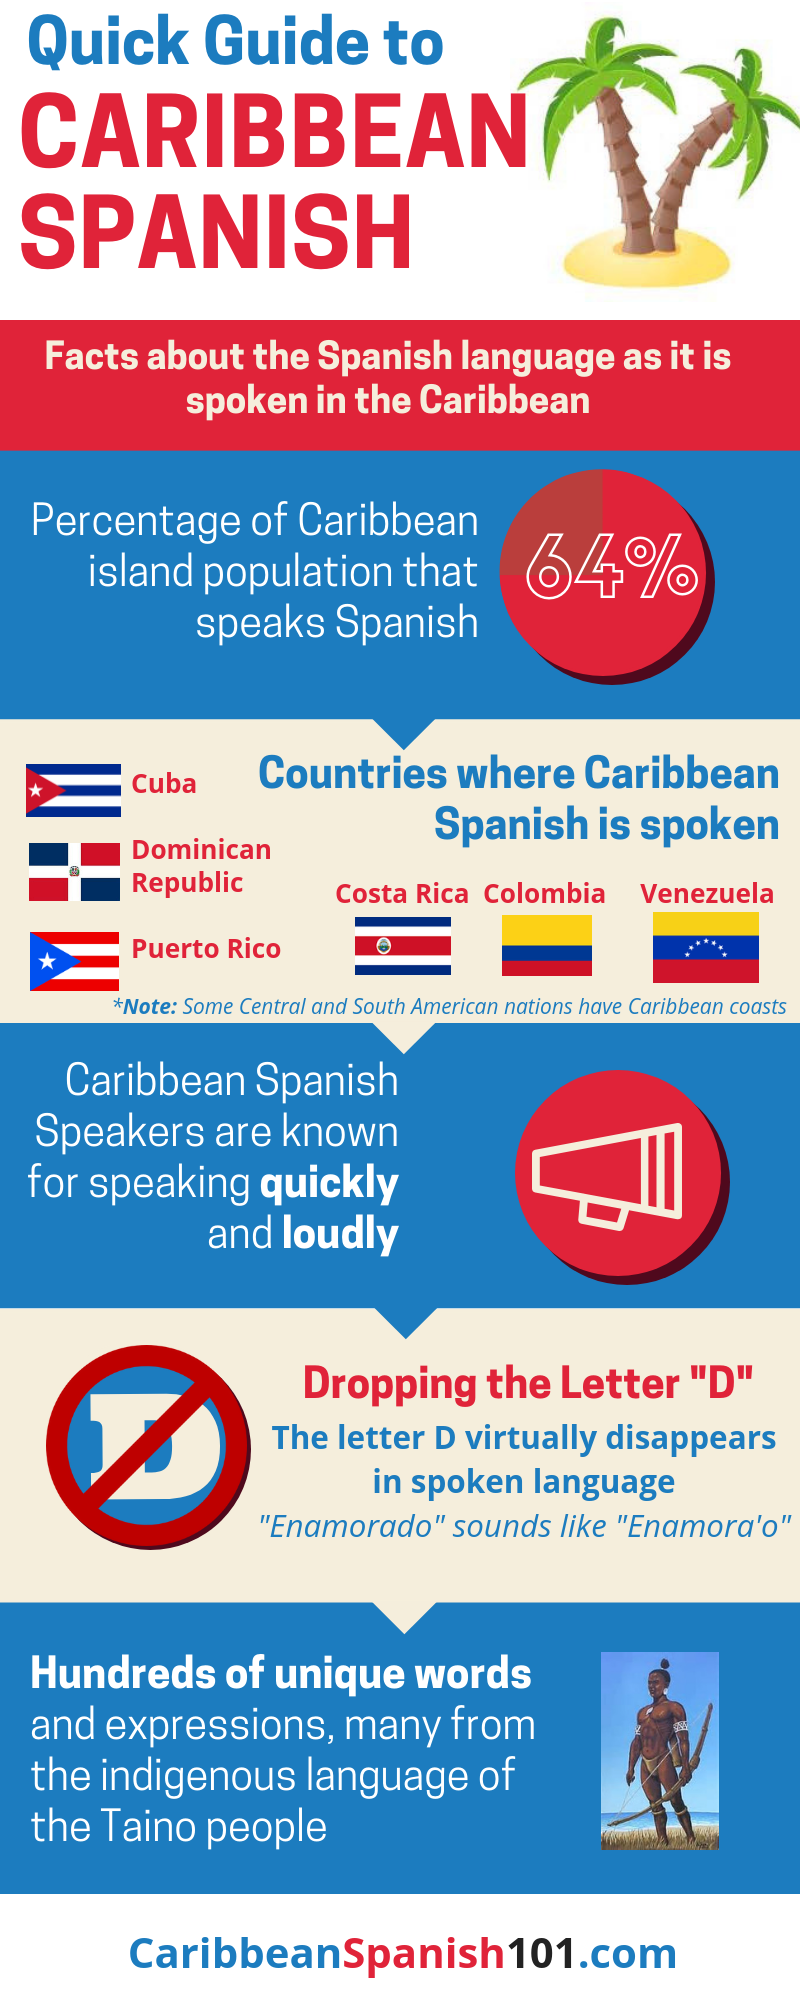 Your Ultimate Guide to Caribbean Spanish Slang, Words, and